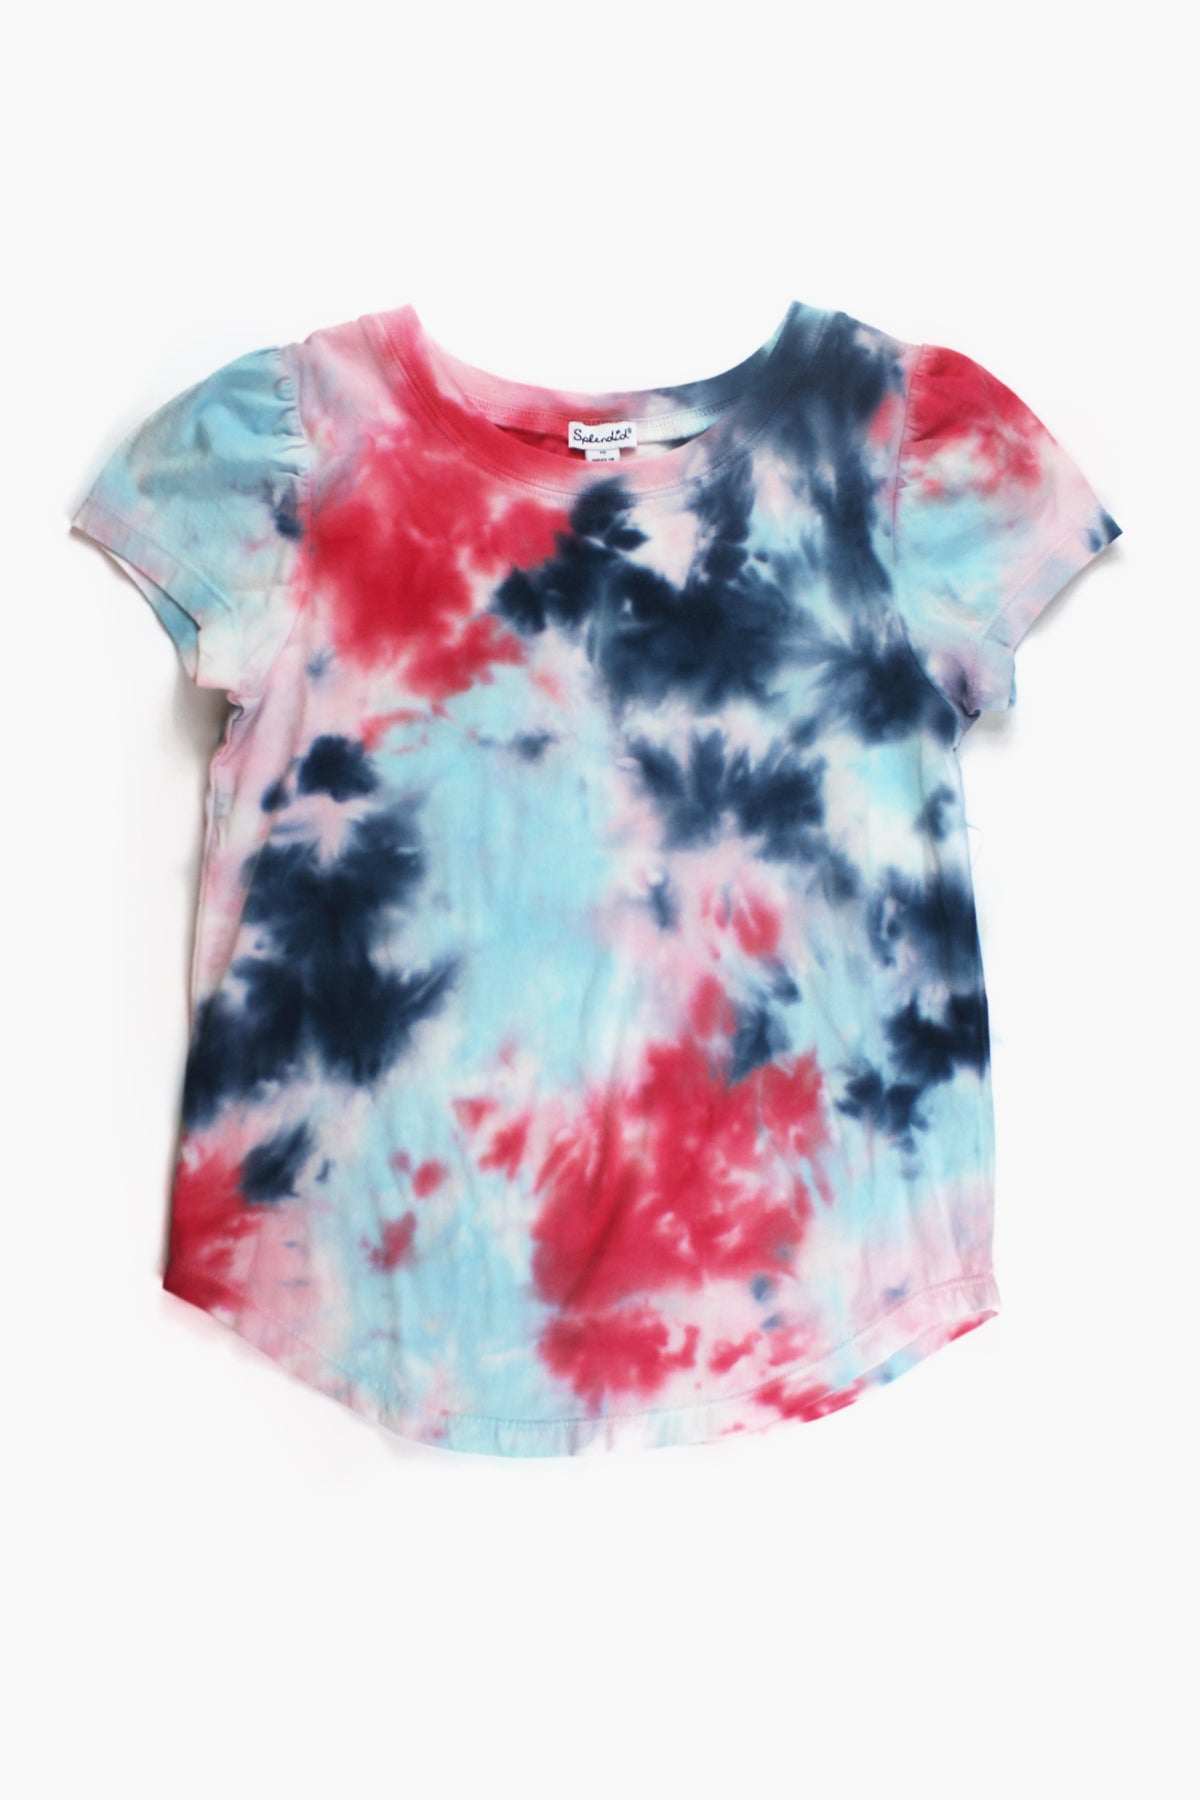 Splendid Tie Dye Girls Shirt